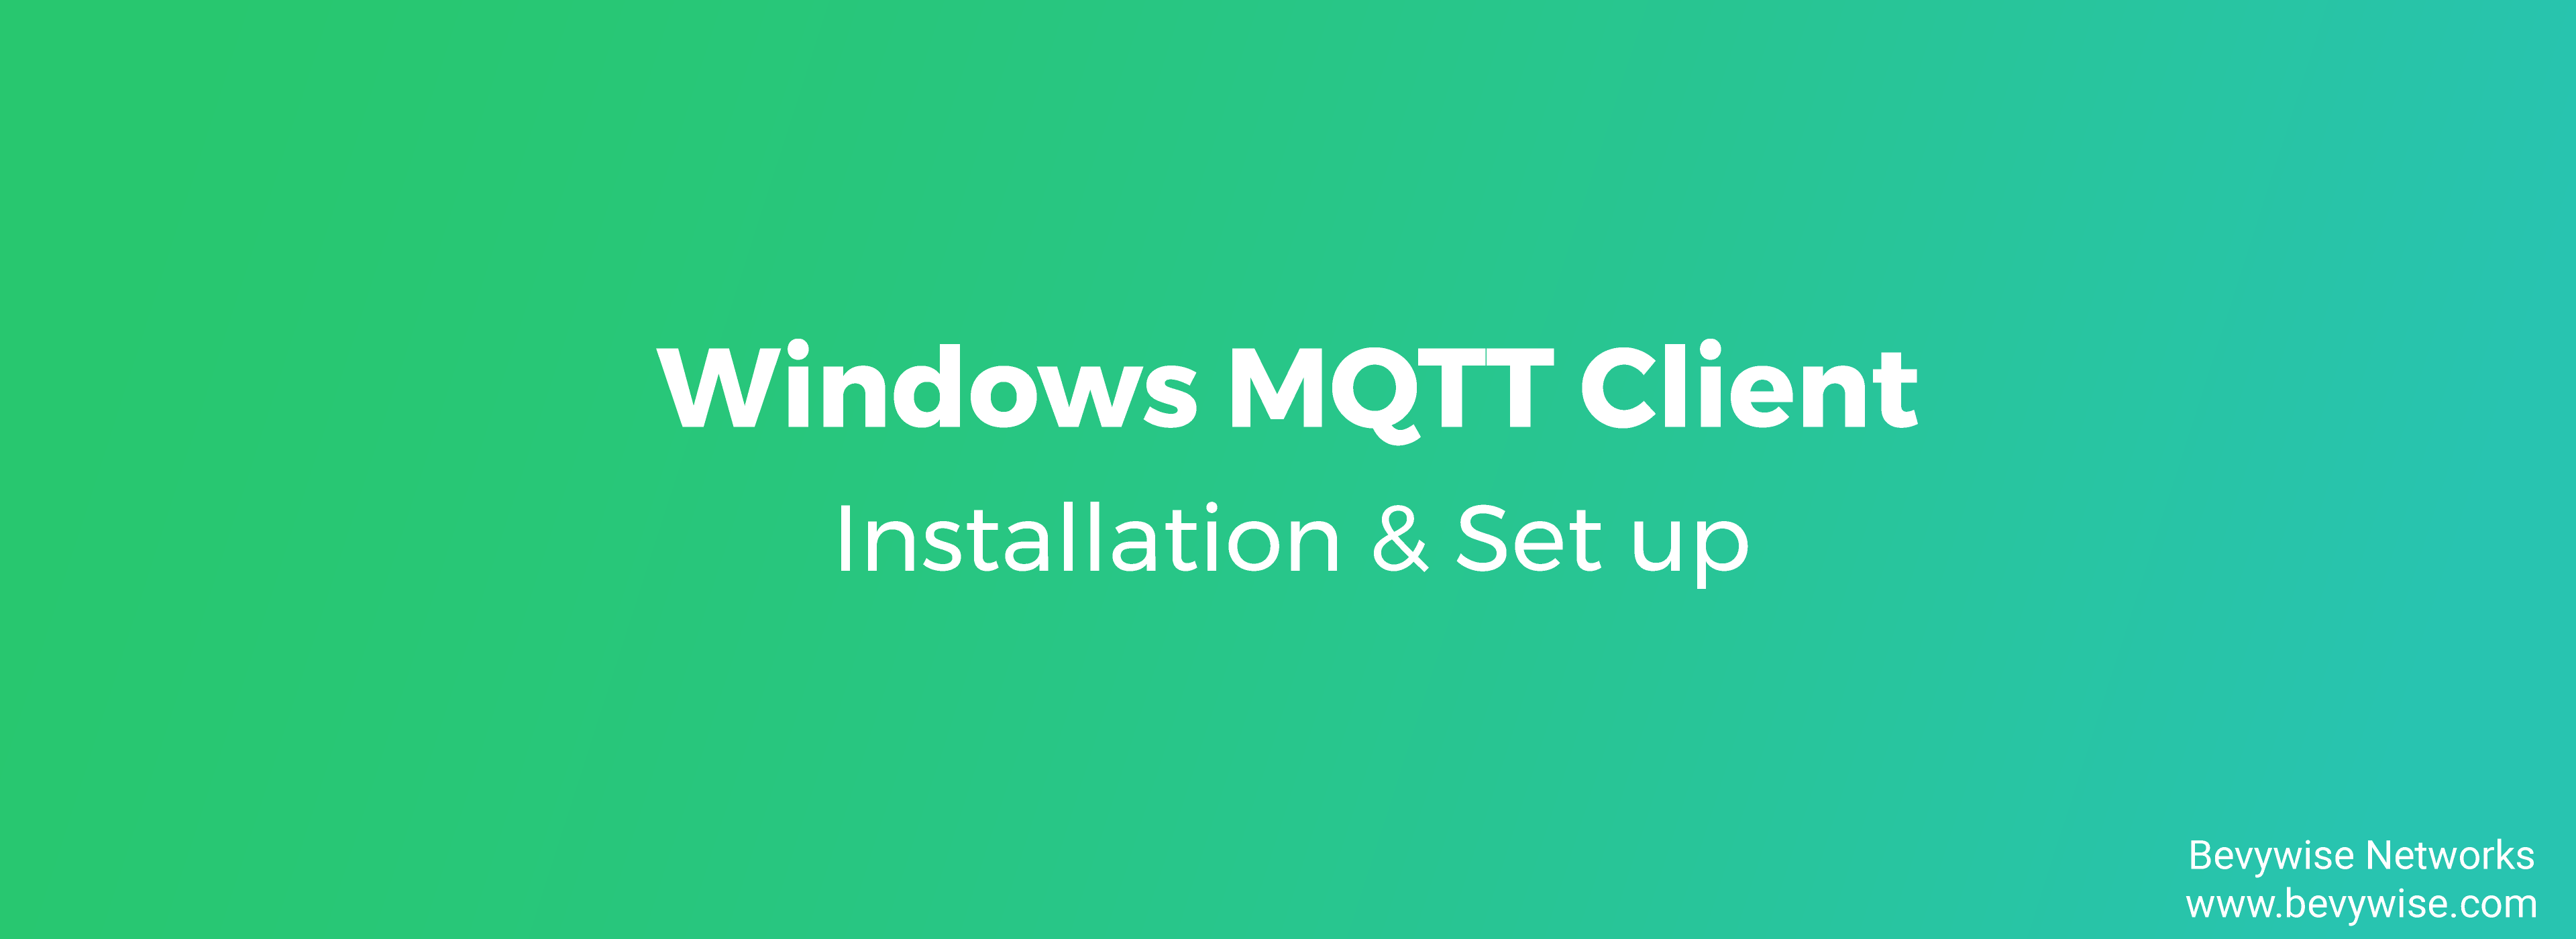 Windows MQTT Client Set up Procedure - OpenSSL & Python